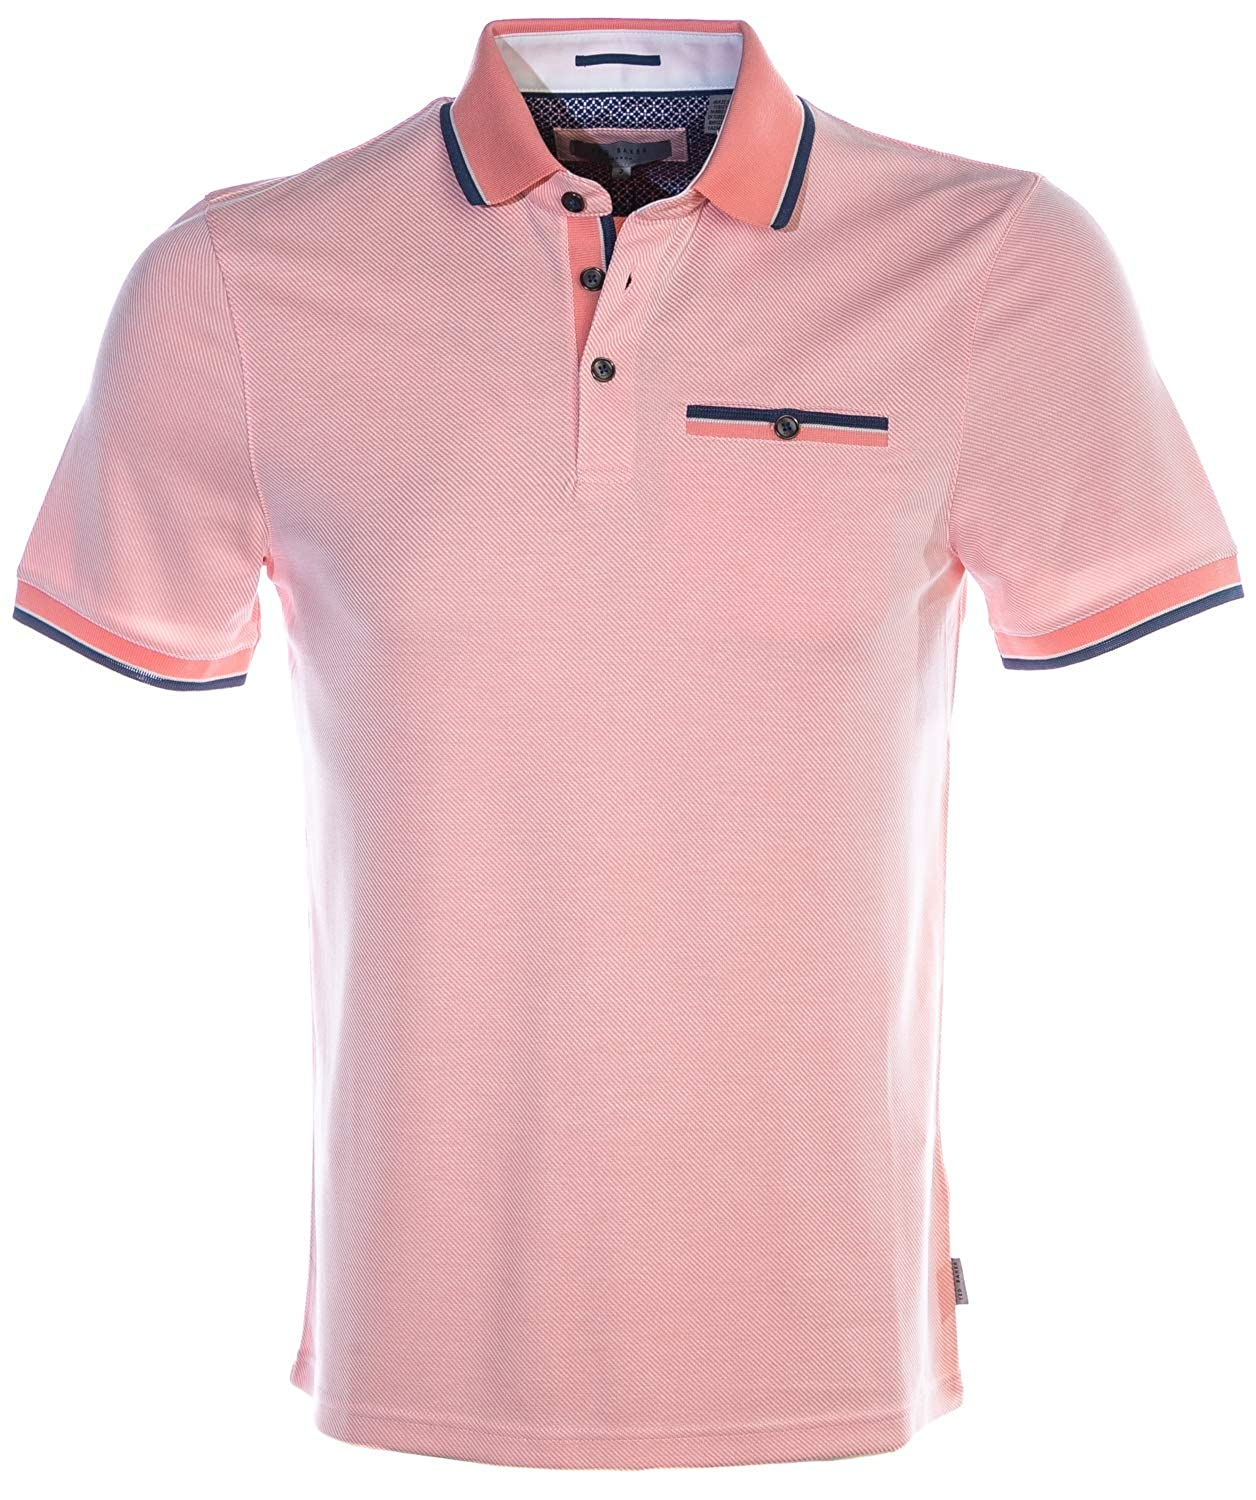 4762c63cd Coral Ted Baker Habtat SS Soft Touch Polo Shirt Coral Coral Coral Pink  facc3f